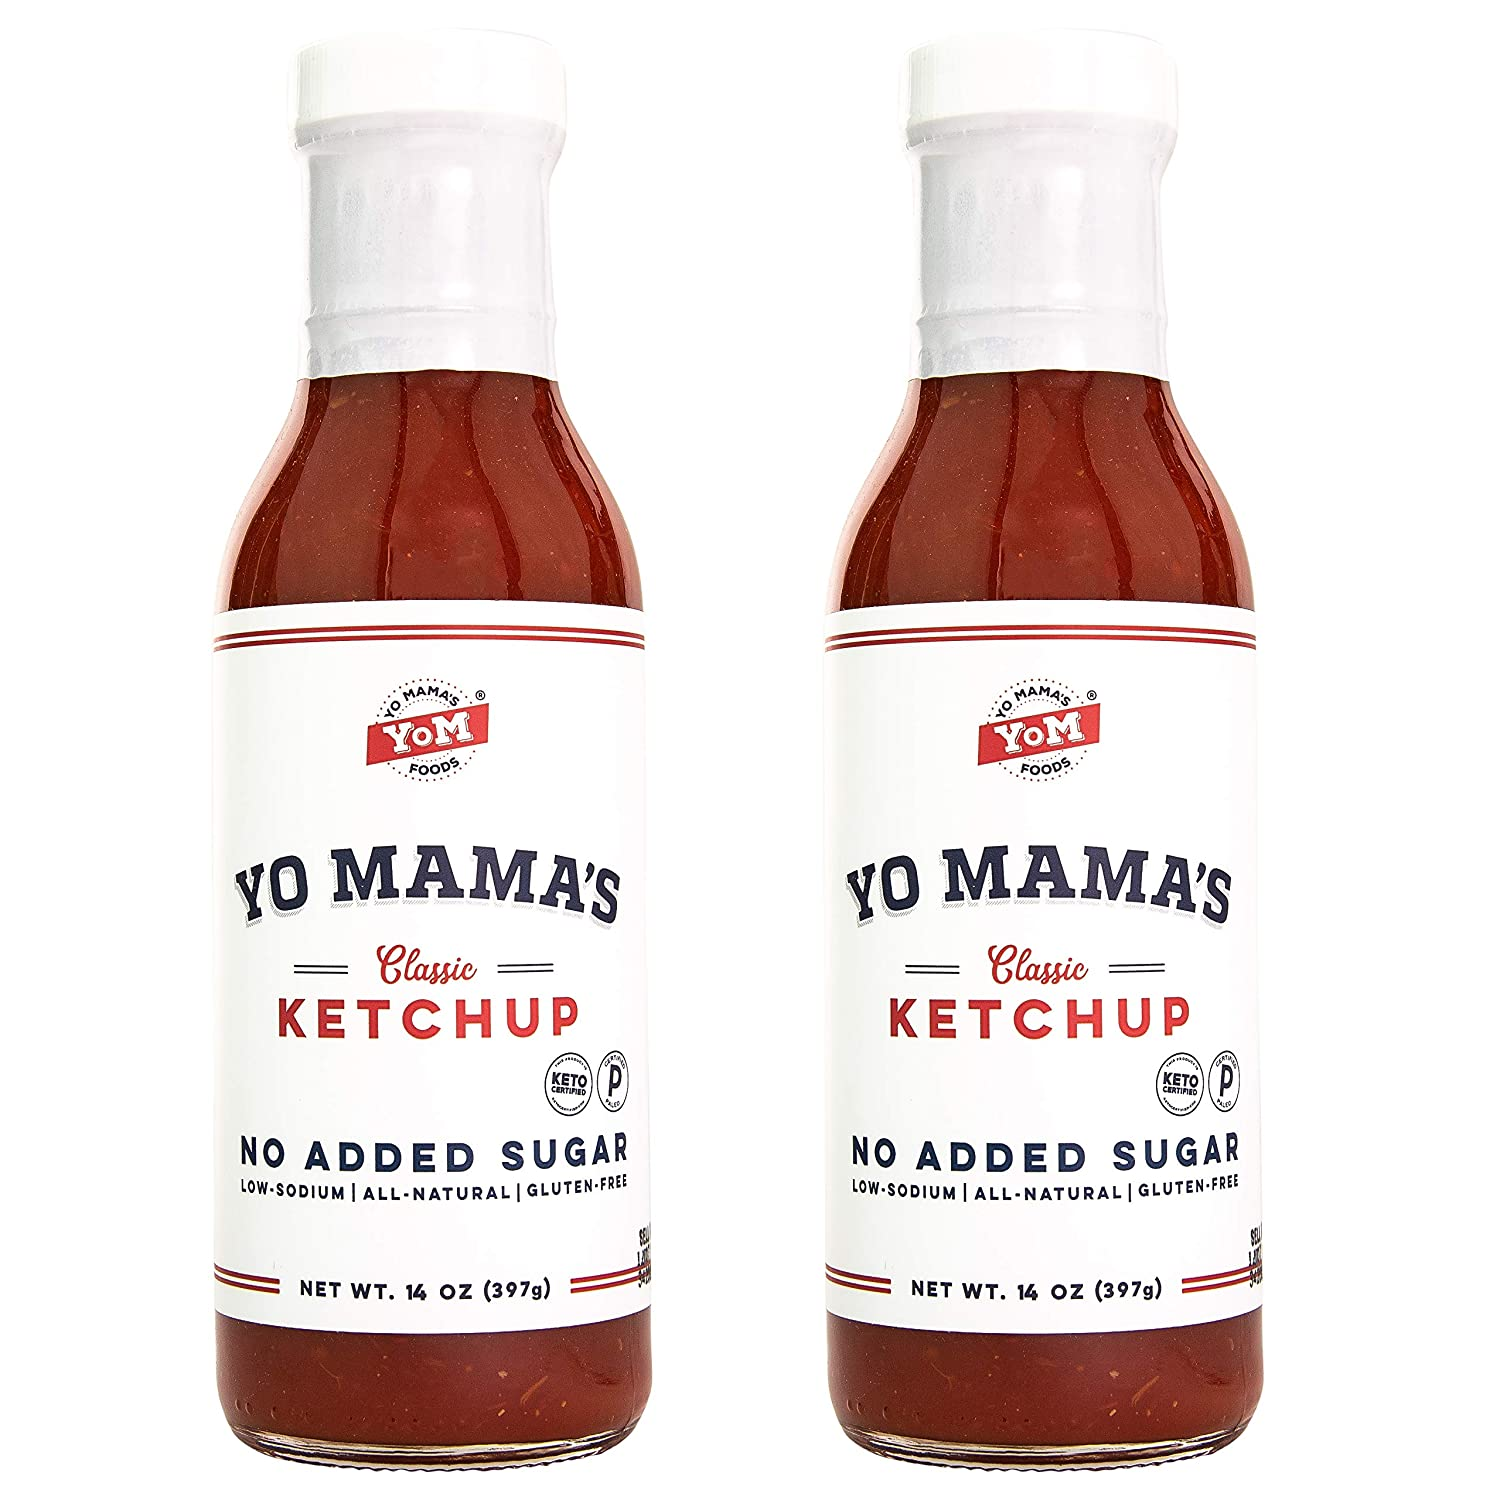 Keto Classic Ketchup by Yo Mama's Foods – Pack of (2) - No Sugar Added, Low Carb, Vegan, Gluten Free, Paleo Friendly, and Made with Whole Non-GMO Tomatoes!